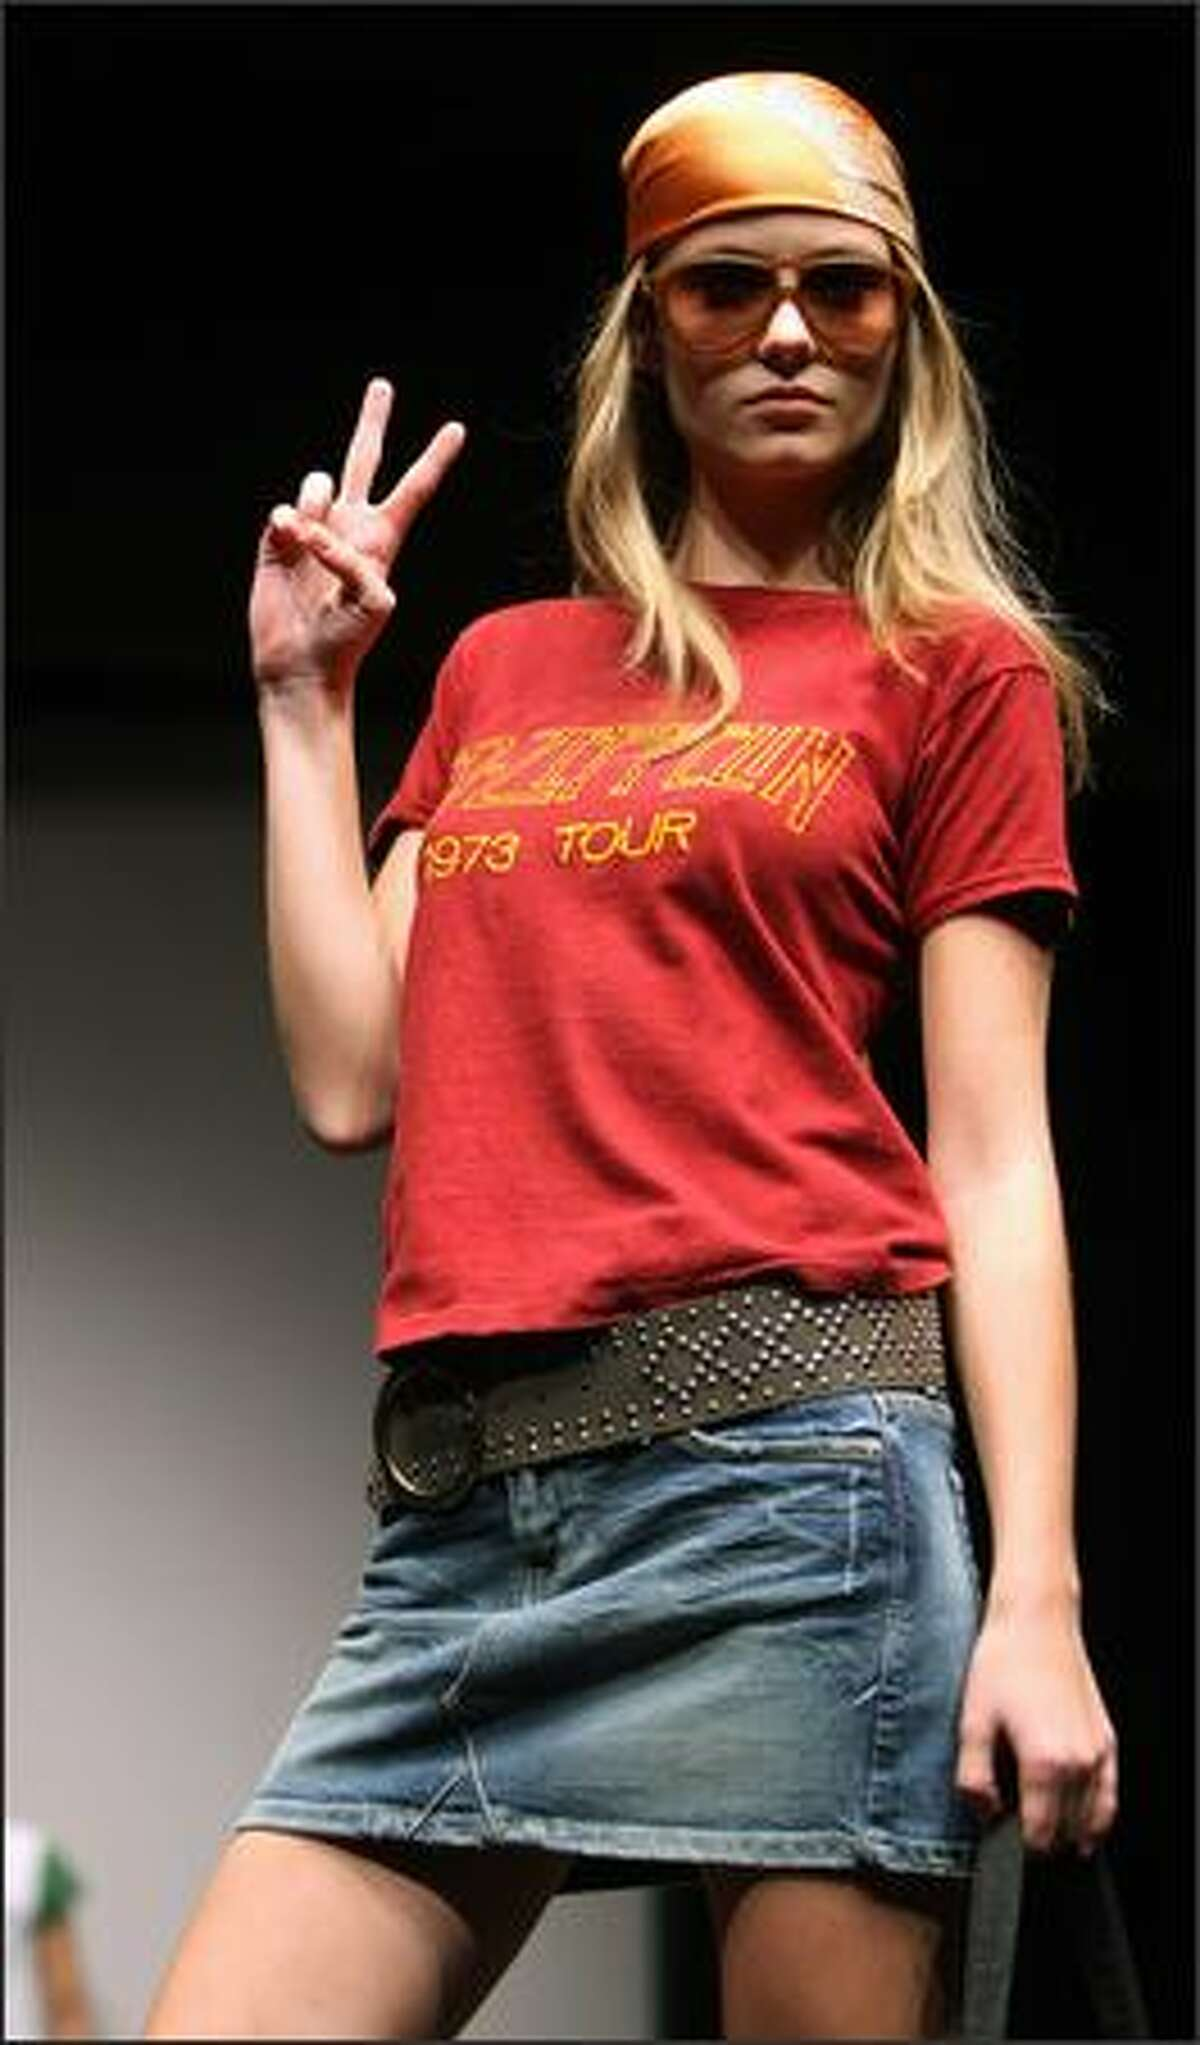 A model displays a vintage Led Zepellin 1973 tour T-shirt (estimated at $1,000-$1,500) during a show featuring Rock and Pop memorabilia at Christie's auction house in New York, Friday. Christie's will hold an auction of 292 lots of Rock and Pop Memorabilia on 30 November 2007, ranging from vintage T-shirts, autographed pictures, original music scores to musical instruments and Gold and Platinum albums.